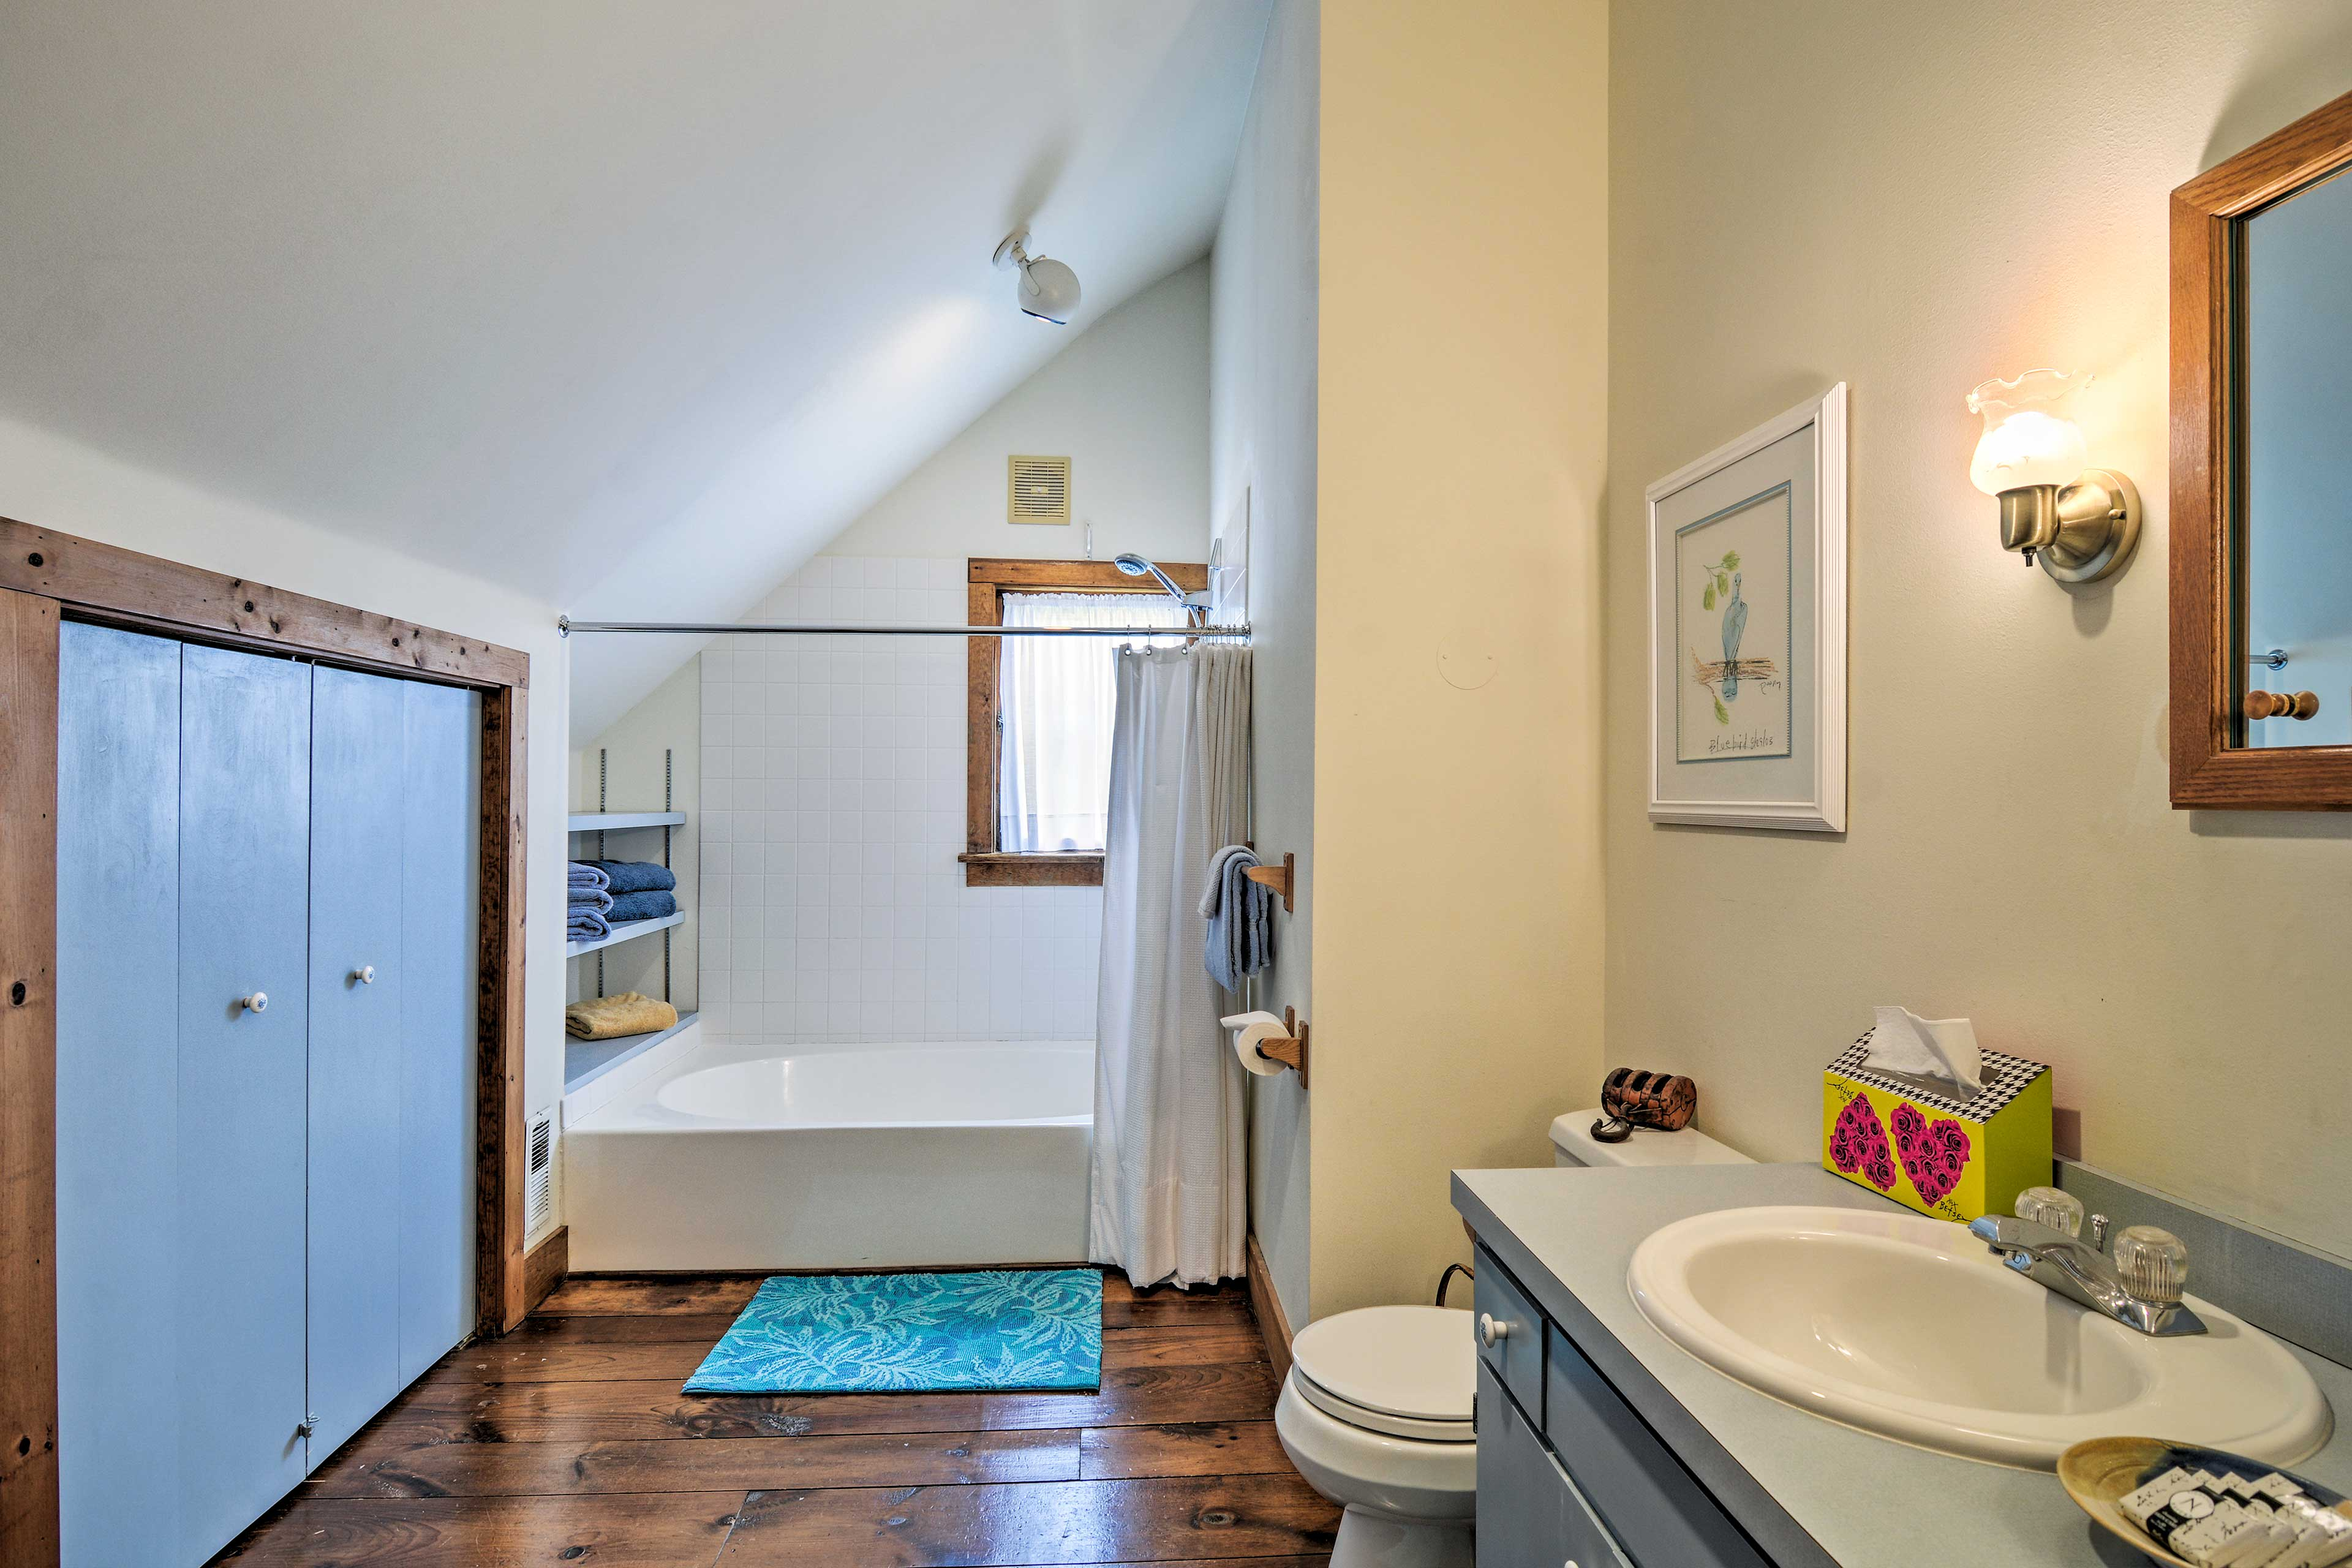 In the upstairs bathroom, you will find a shower/tub combo.